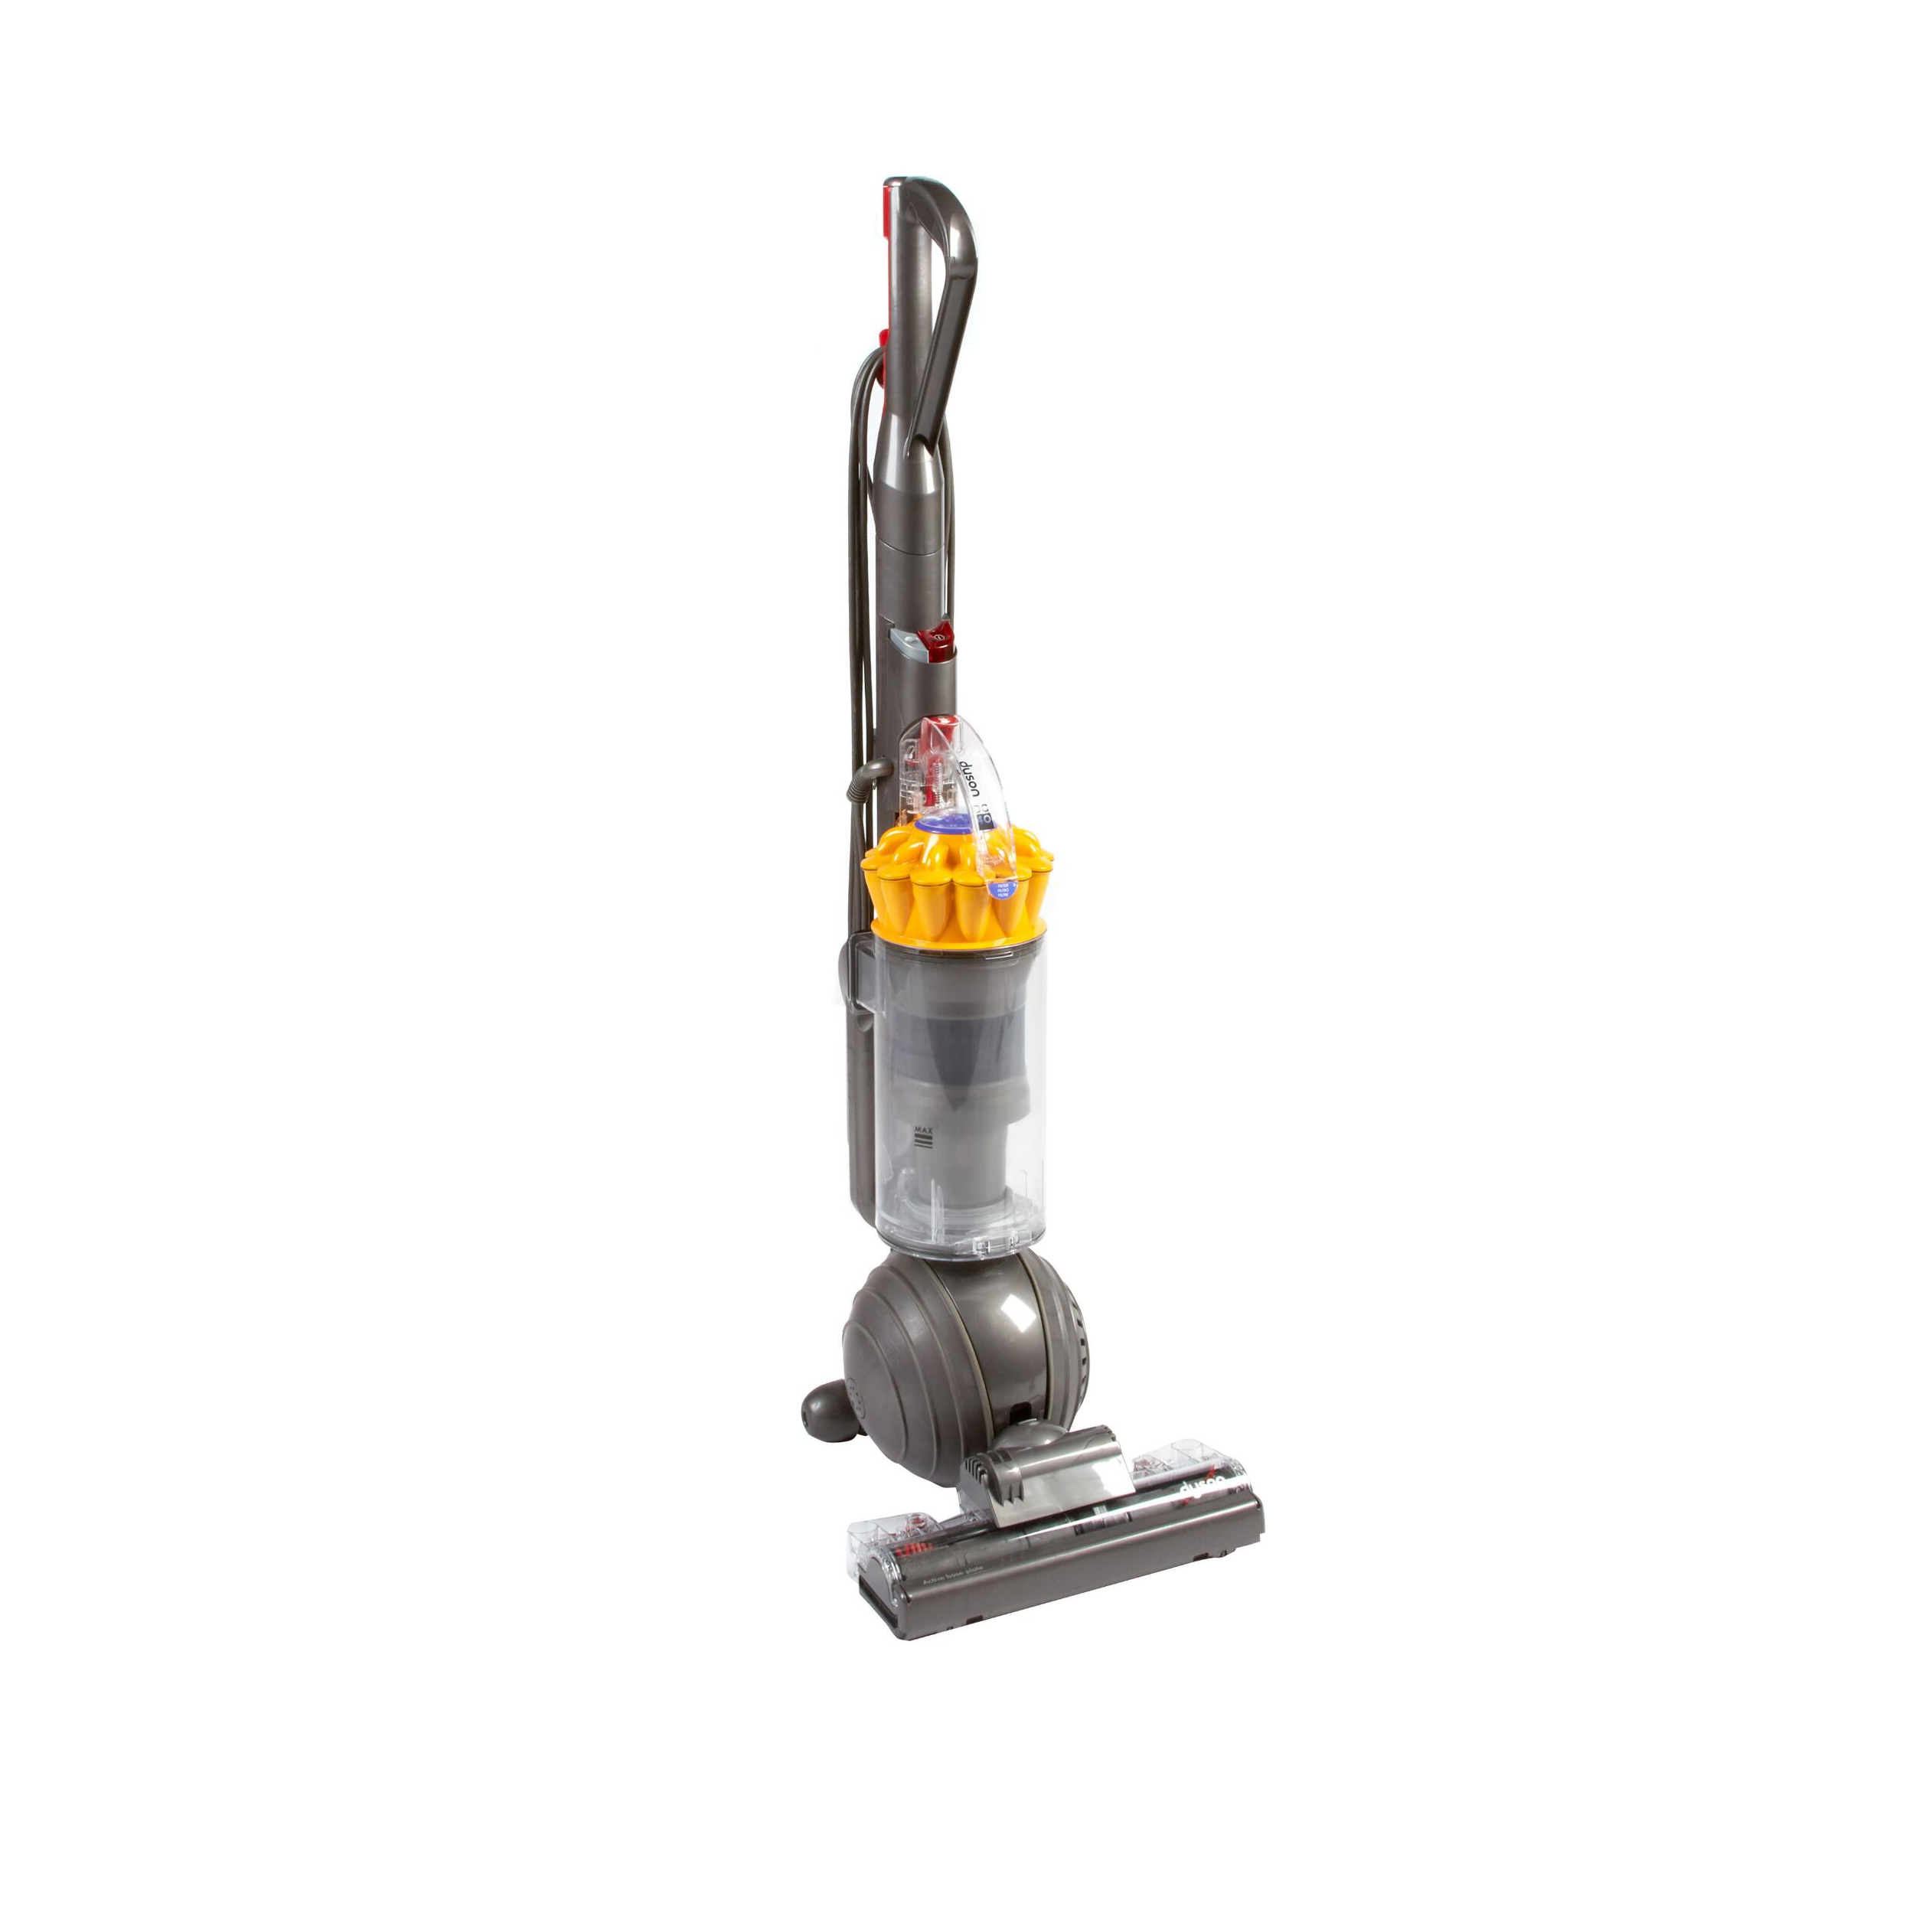 ball musclehead dyson cylinder reviews floor review vacuum multi cleaner